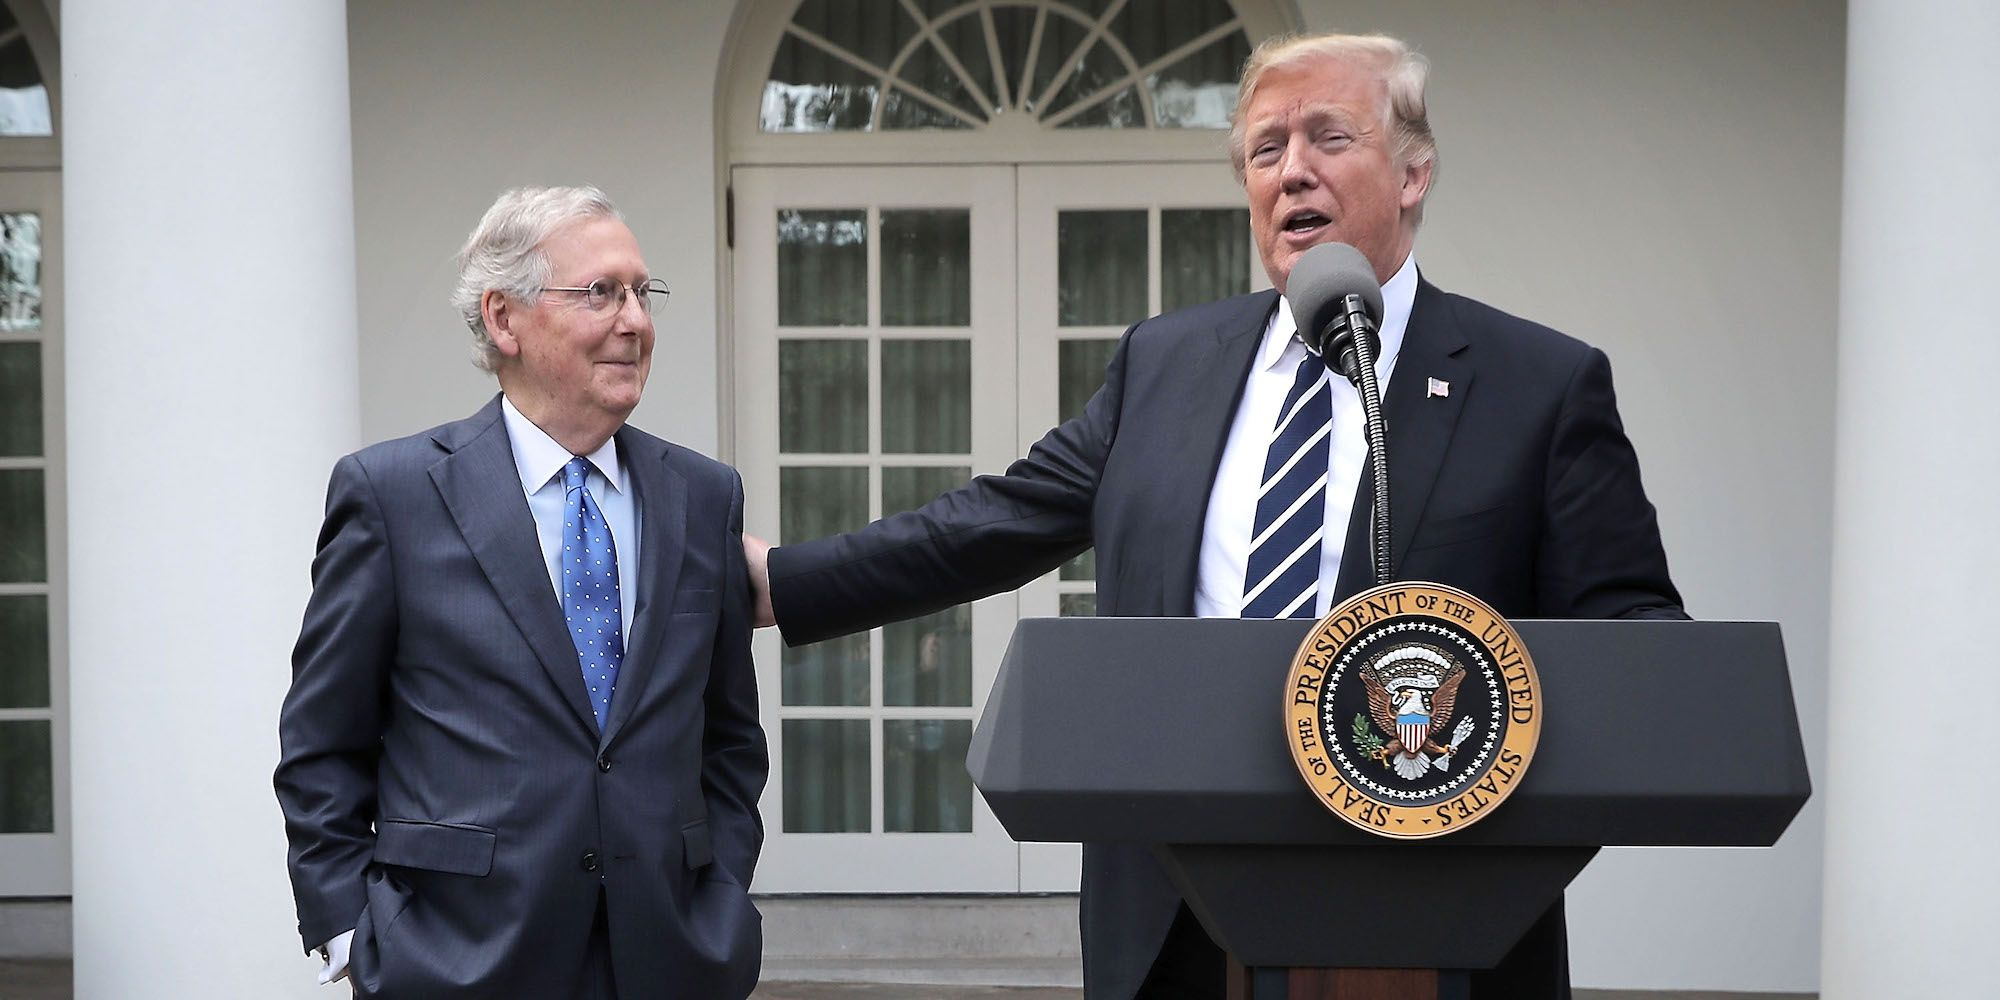 President Trump And Sen. Mitch McConnell Address Media After Working Lunch